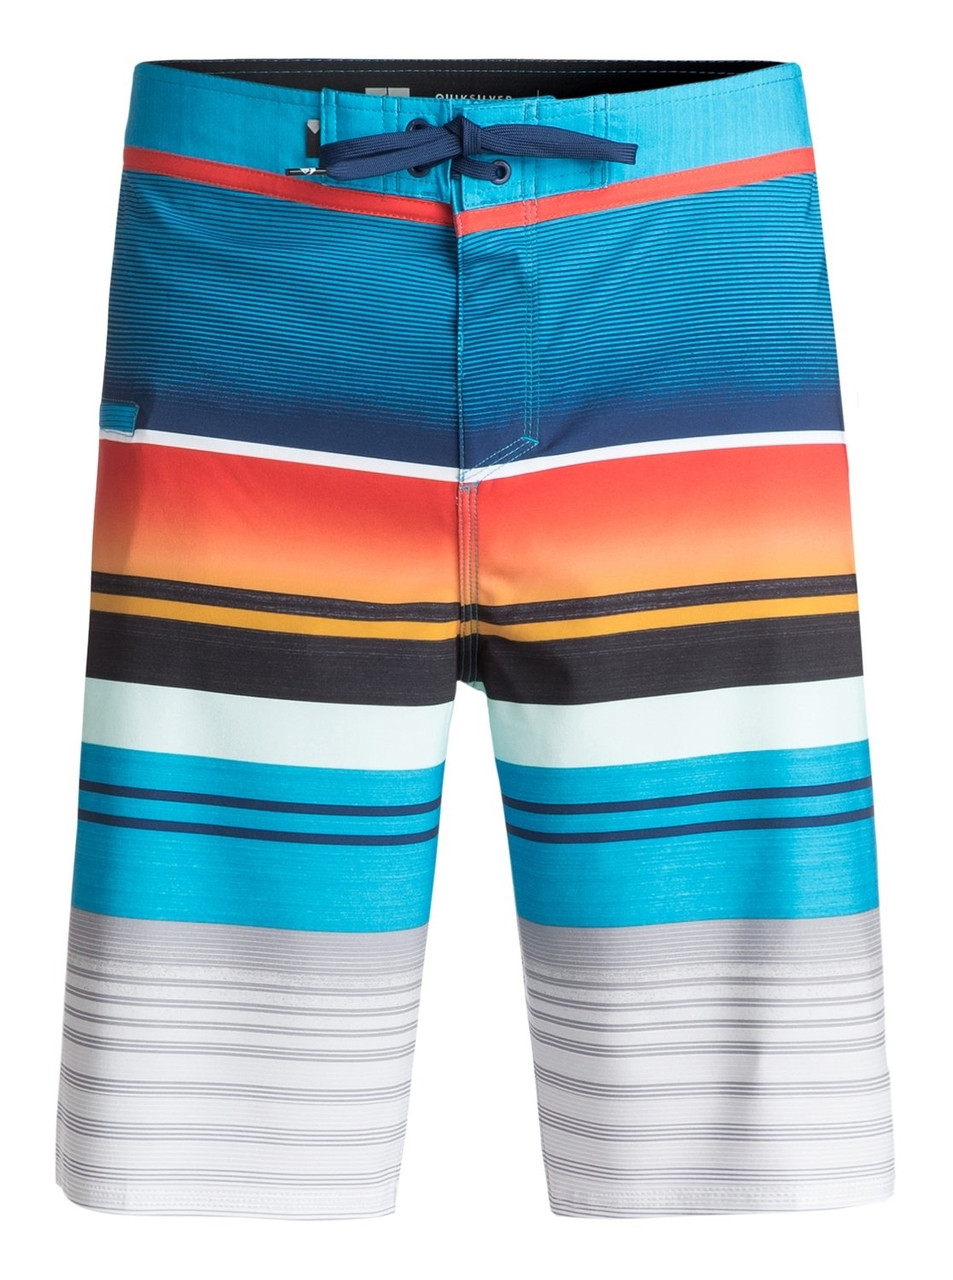 a5438d1862 Quiksilver Everyday Stripe Vee Boardshorts | Boardshorts | WaterSkis.com